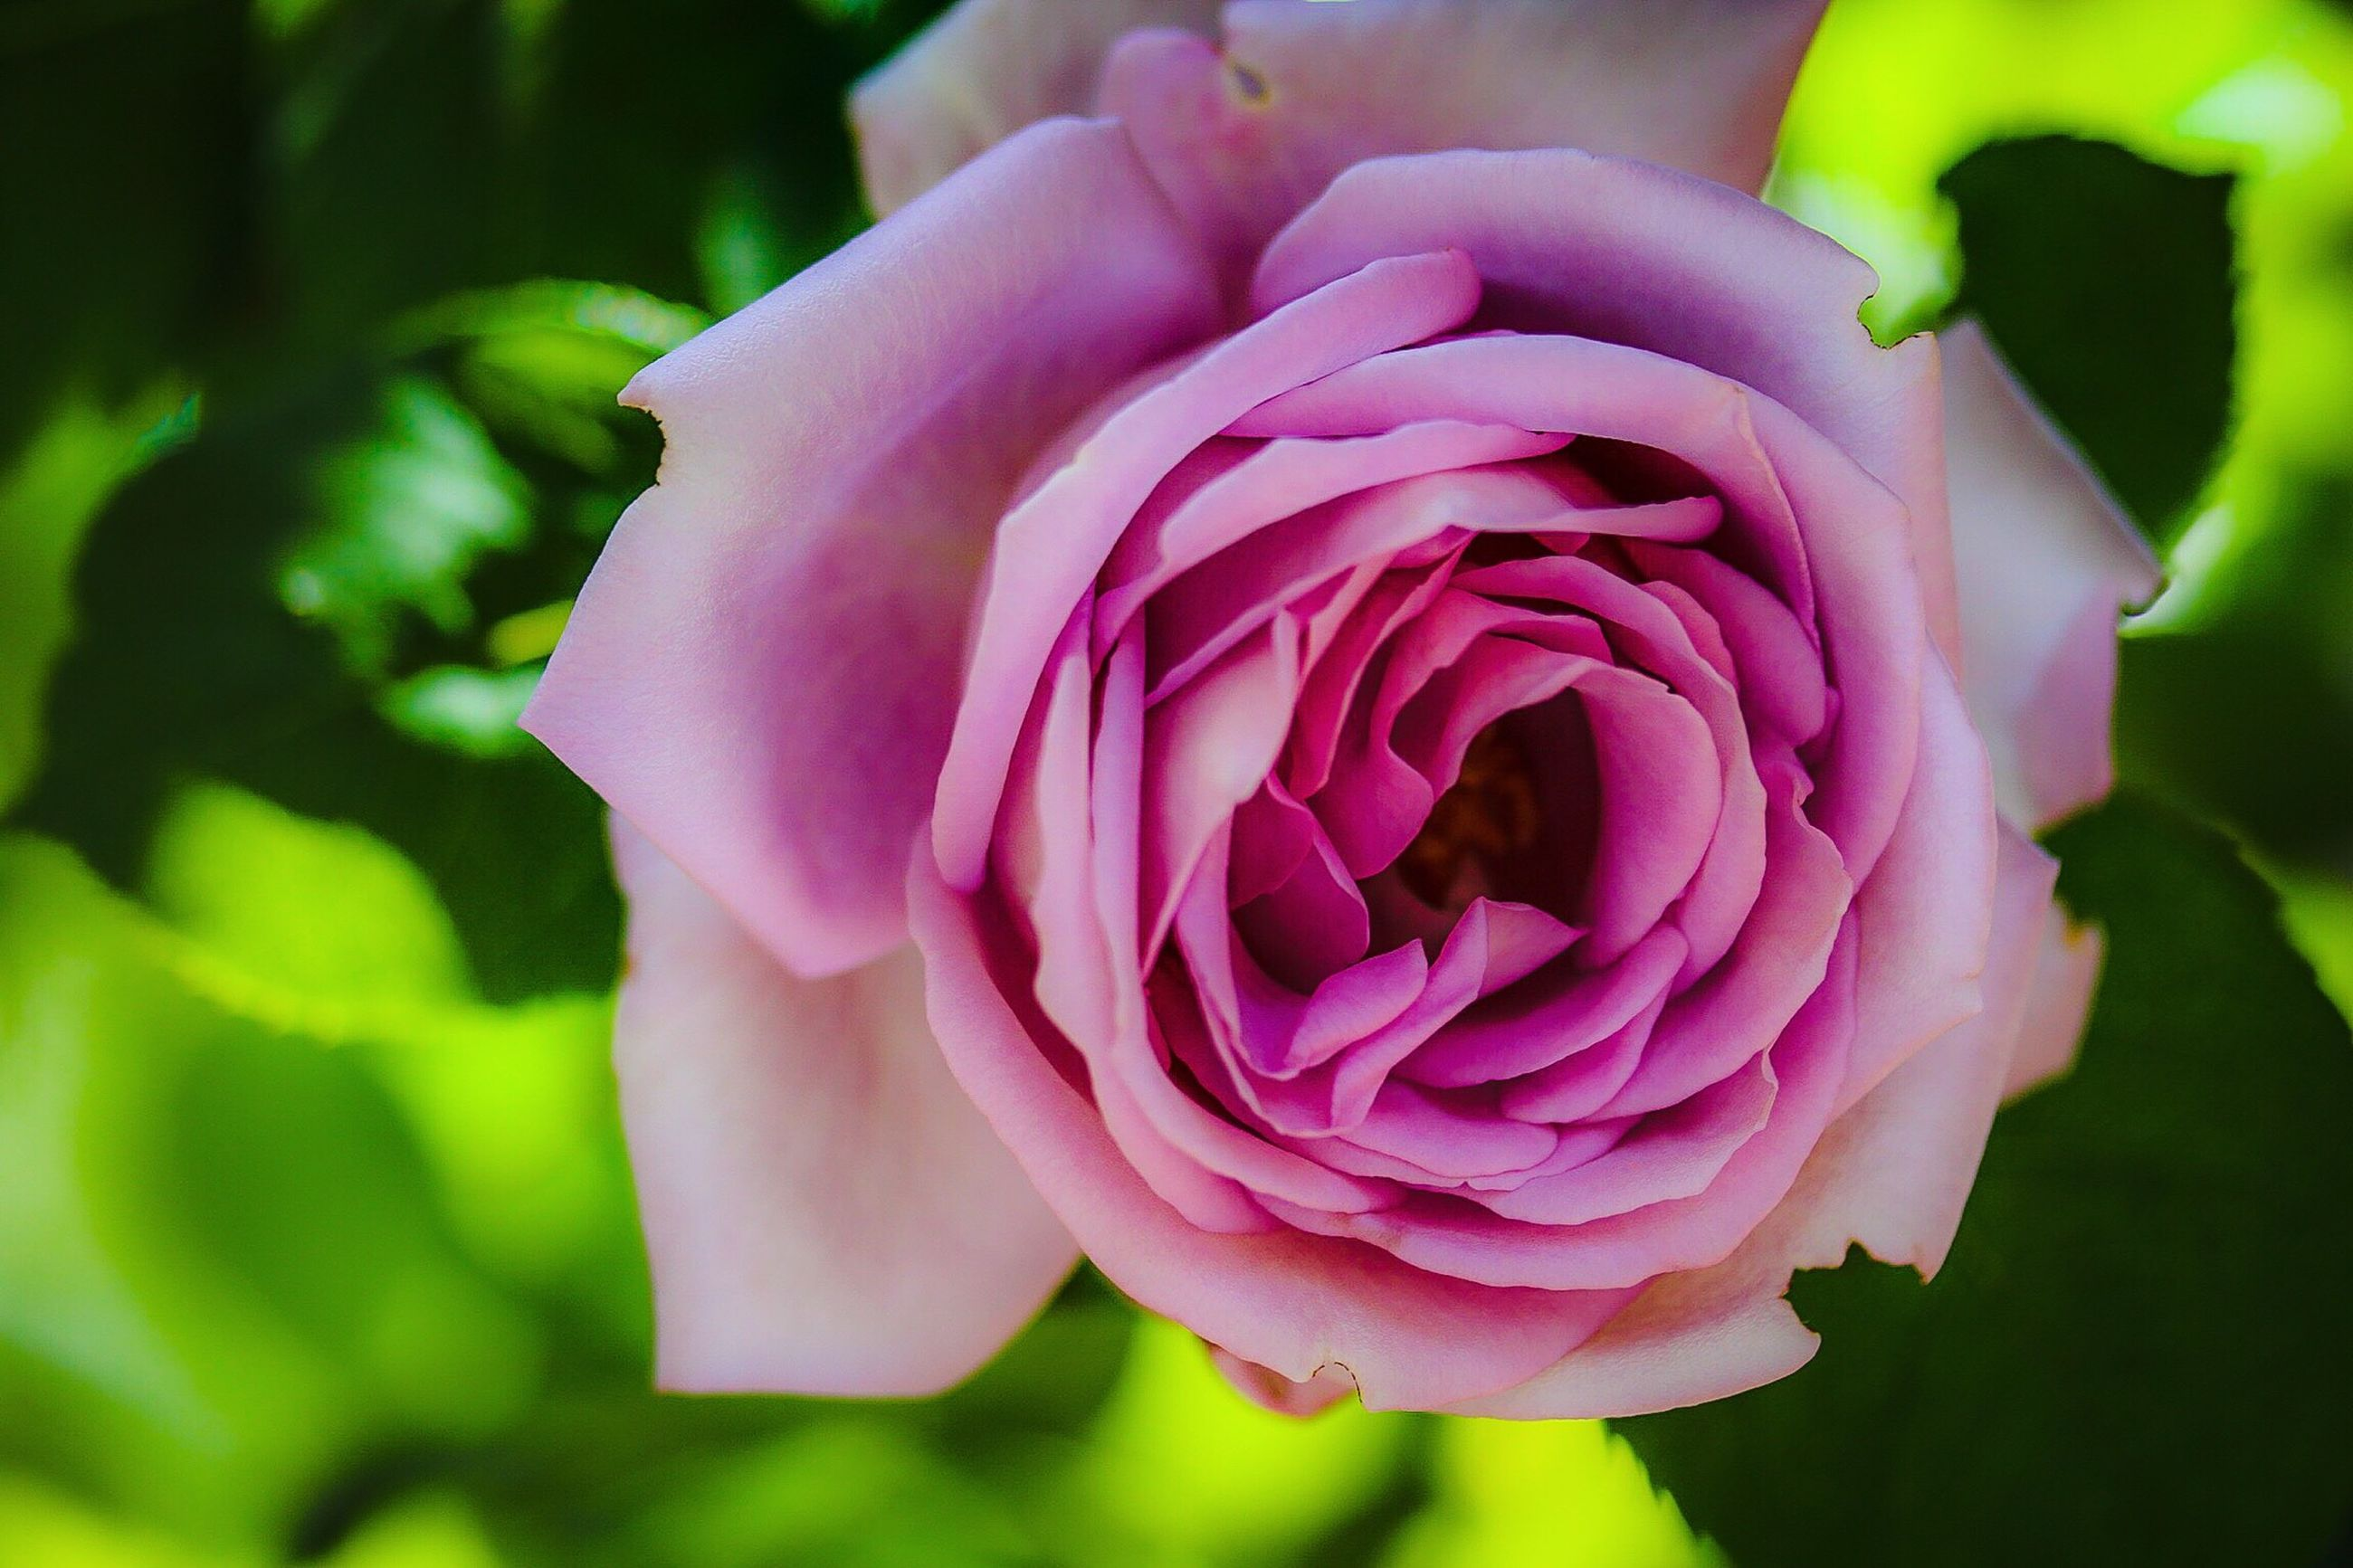 flower, petal, freshness, flower head, fragility, pink color, close-up, beauty in nature, rose - flower, growth, focus on foreground, single flower, nature, blooming, pink, plant, in bloom, rose, park - man made space, blossom